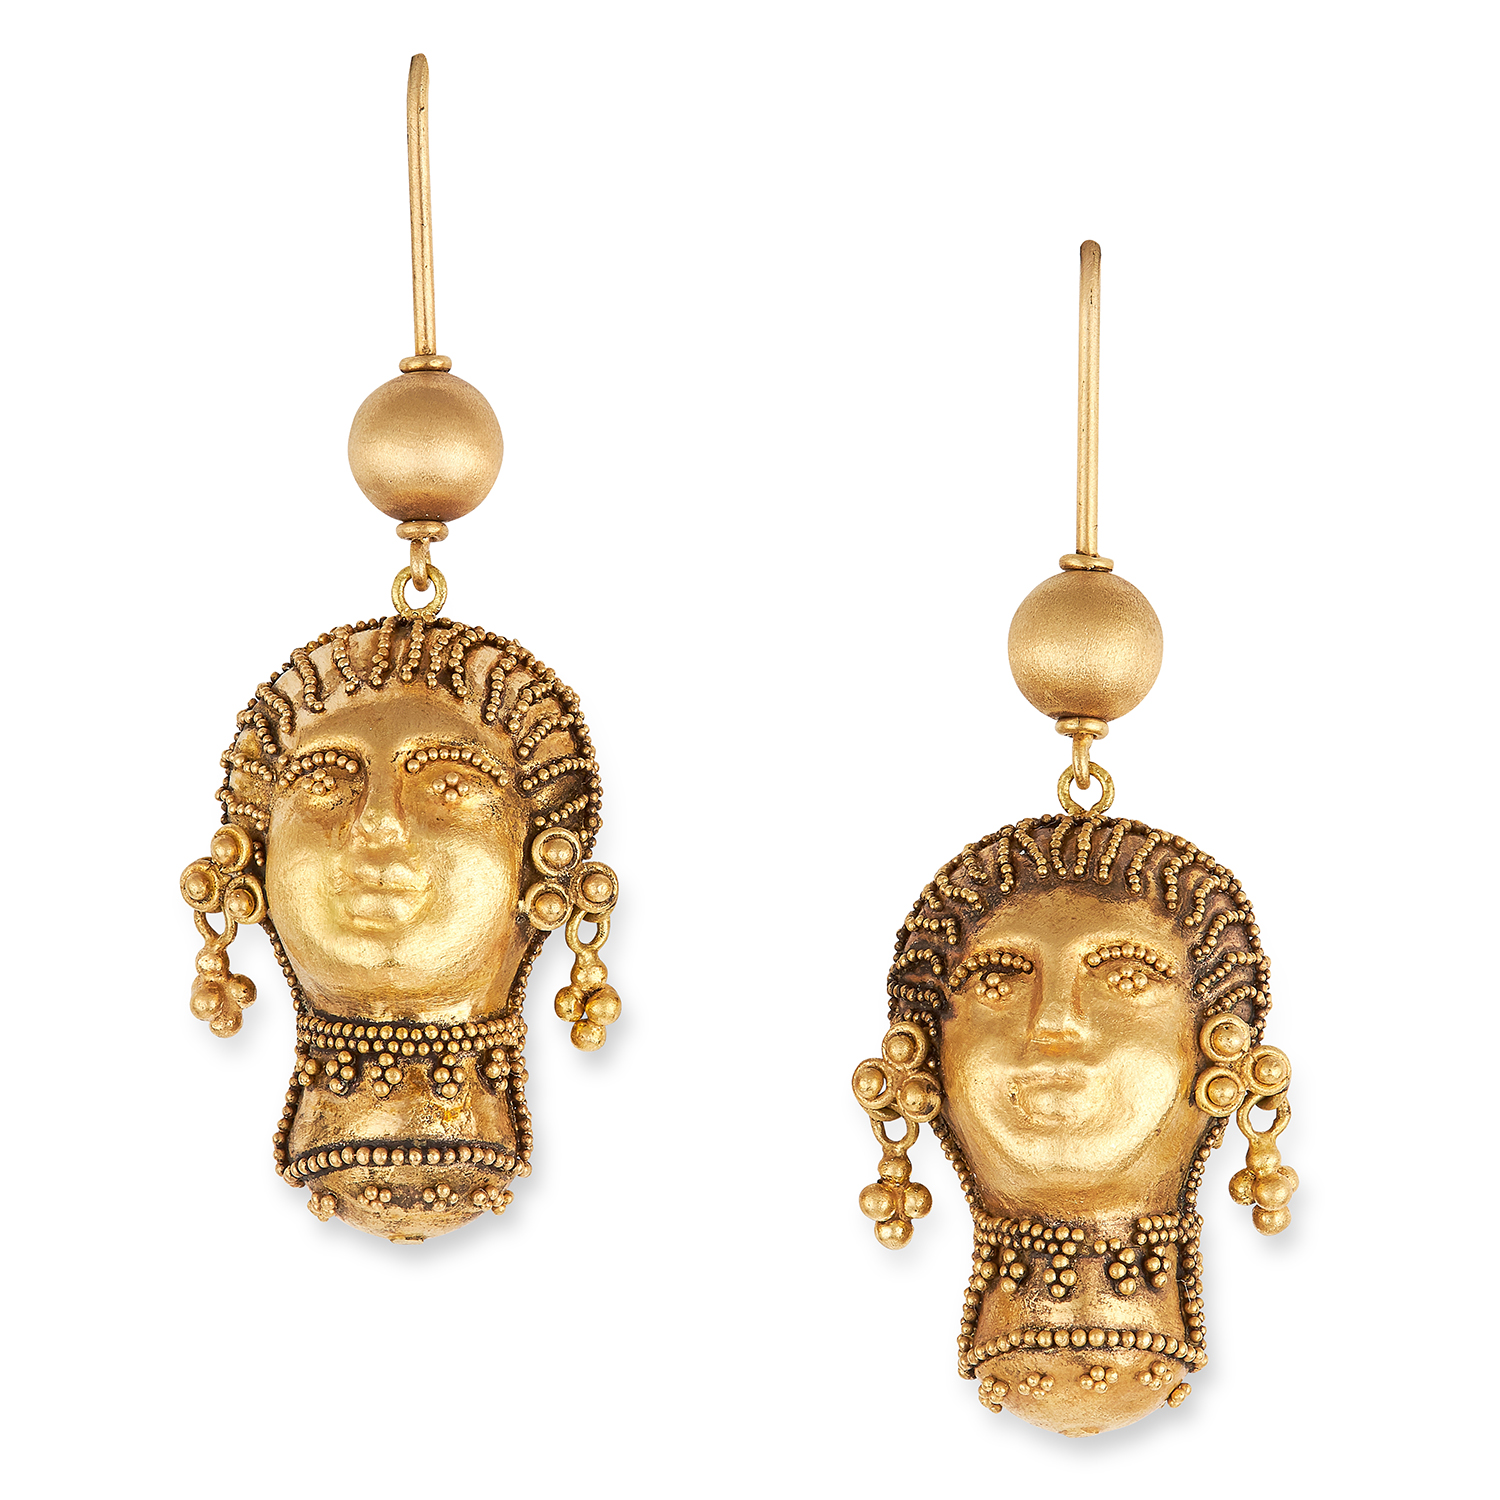 ANTIQUE ETRUSCAN REVIVAL EARRINGS in high carat yellow gold, in Etruscan revival form depicting